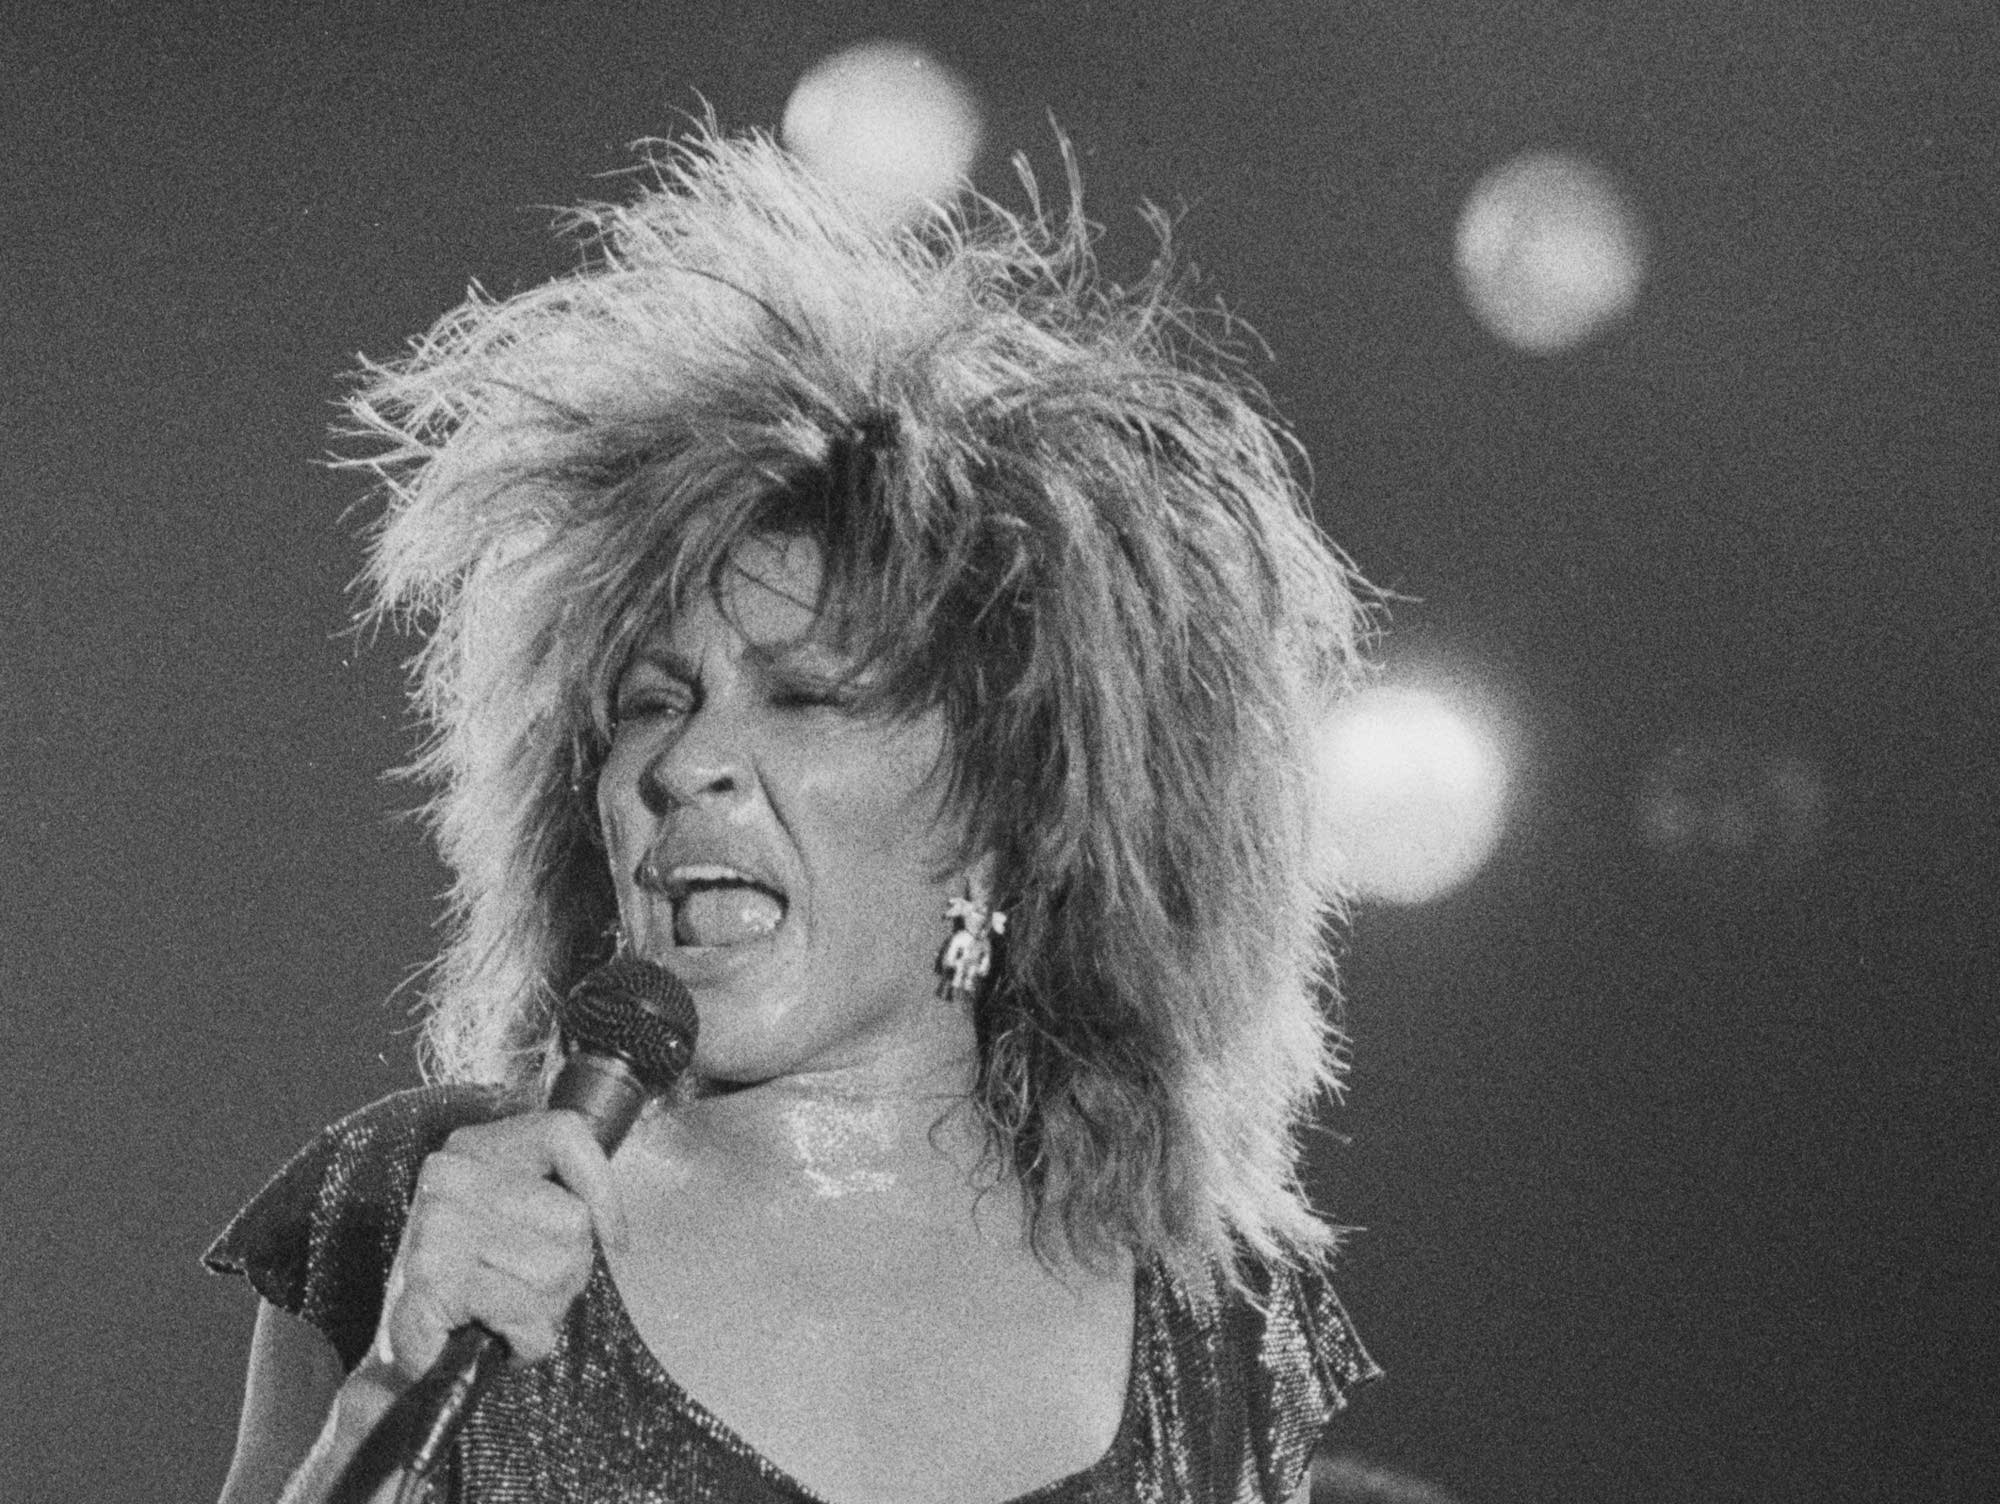 Tina Turner sings into microphone.